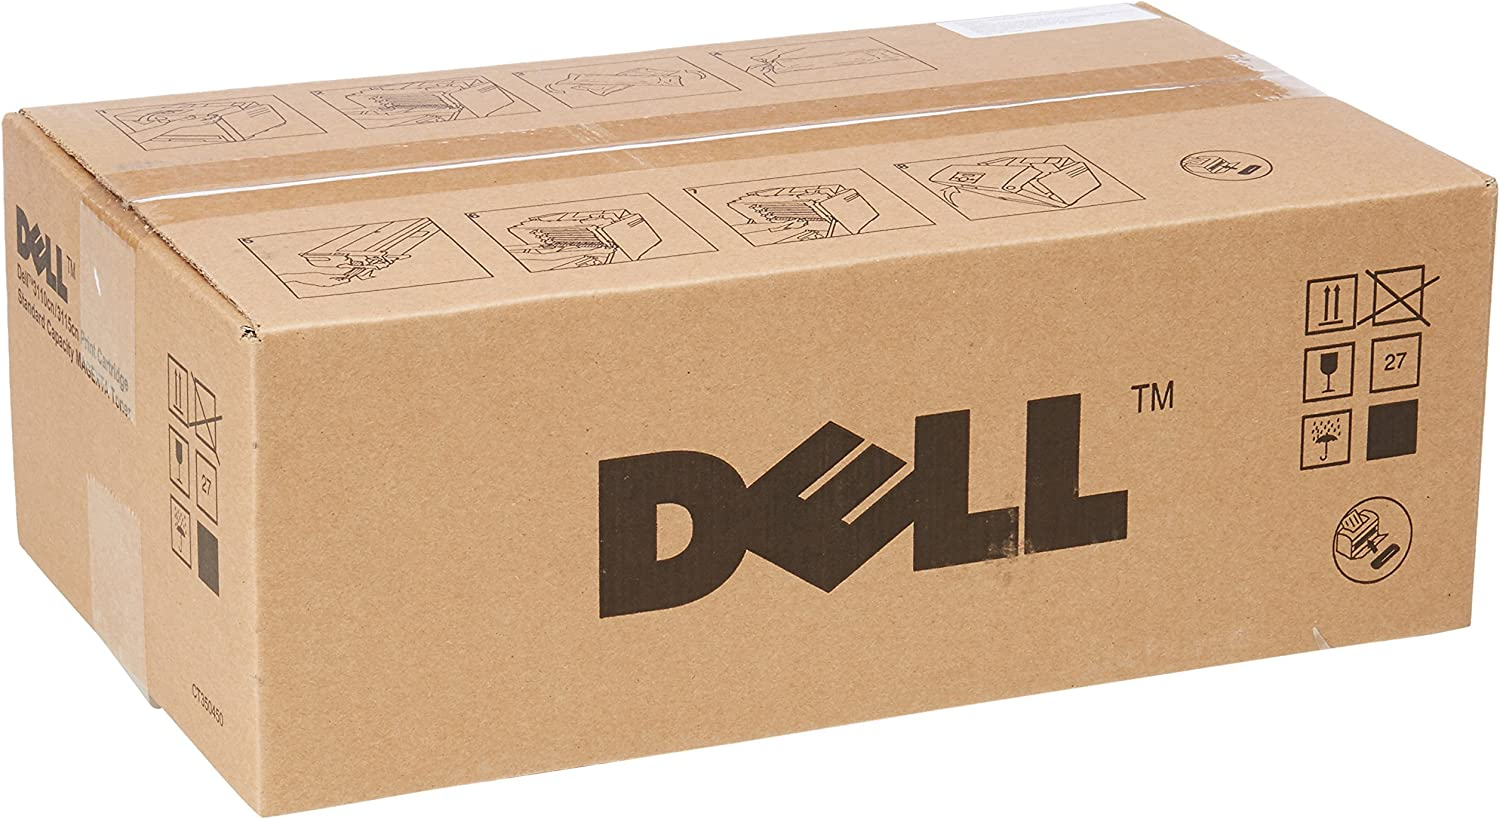 Dell MF790 3110 3115 Toner Cartridge (Magenta) in Retail Packaging